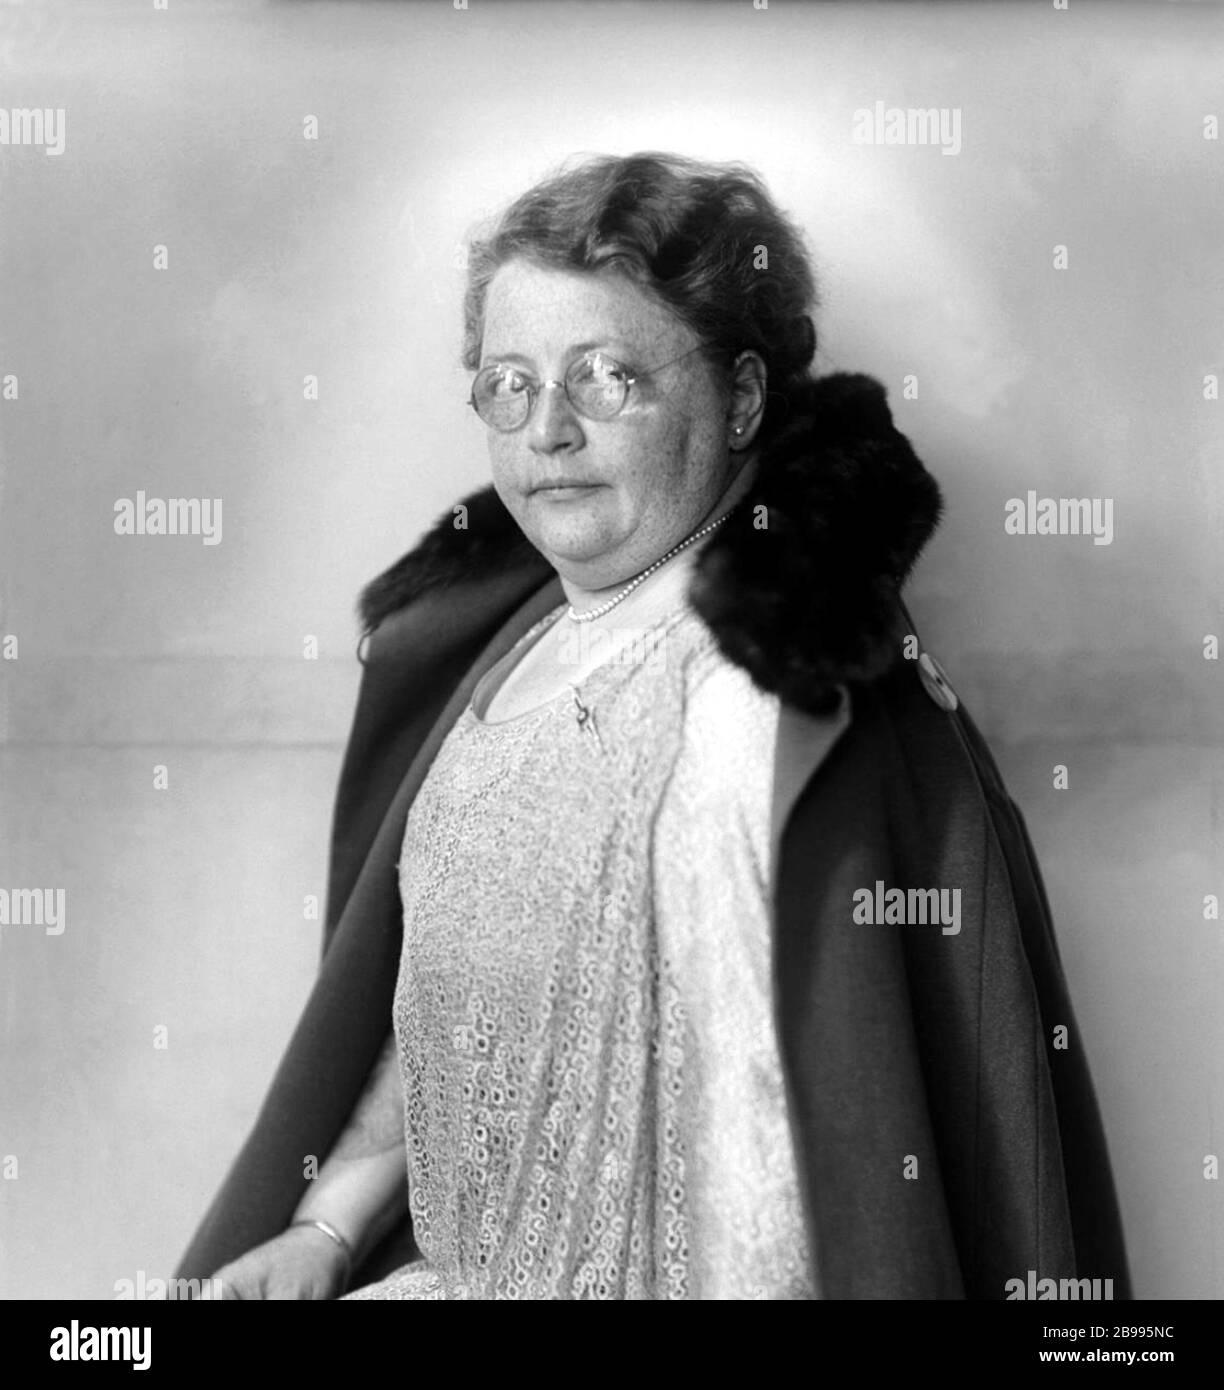 1930 ca, AMSTERDAM , HOLLAND : The Dutch Suffraggist, feminist and pacifist ROSETTE Rosa MANUS ( 1881 - 1942 ) . Photo by Jacob Merkelbach ( 1877 - 1942 ). From the rich jewish family of Amsterdam , in tobacco trade, was arrested in august 1941 by Nazist , and deported to Germany. She was transferred to Ravensbrück concentration camp  in October 1941 was  gassed at Bernburg in 1942 , in Nazi Euthanasia Centre  in a separate wing of the State Sanatorium and Mental Hospital . - OLOCAUSTO - OLOCAUST - SHOA VICTIM - VITTIMA STERMINIO EBRAICO - EBREO - EBREA - EBRAISMO - PACIFISTA - FEMMINISTA - FE Stock Photo